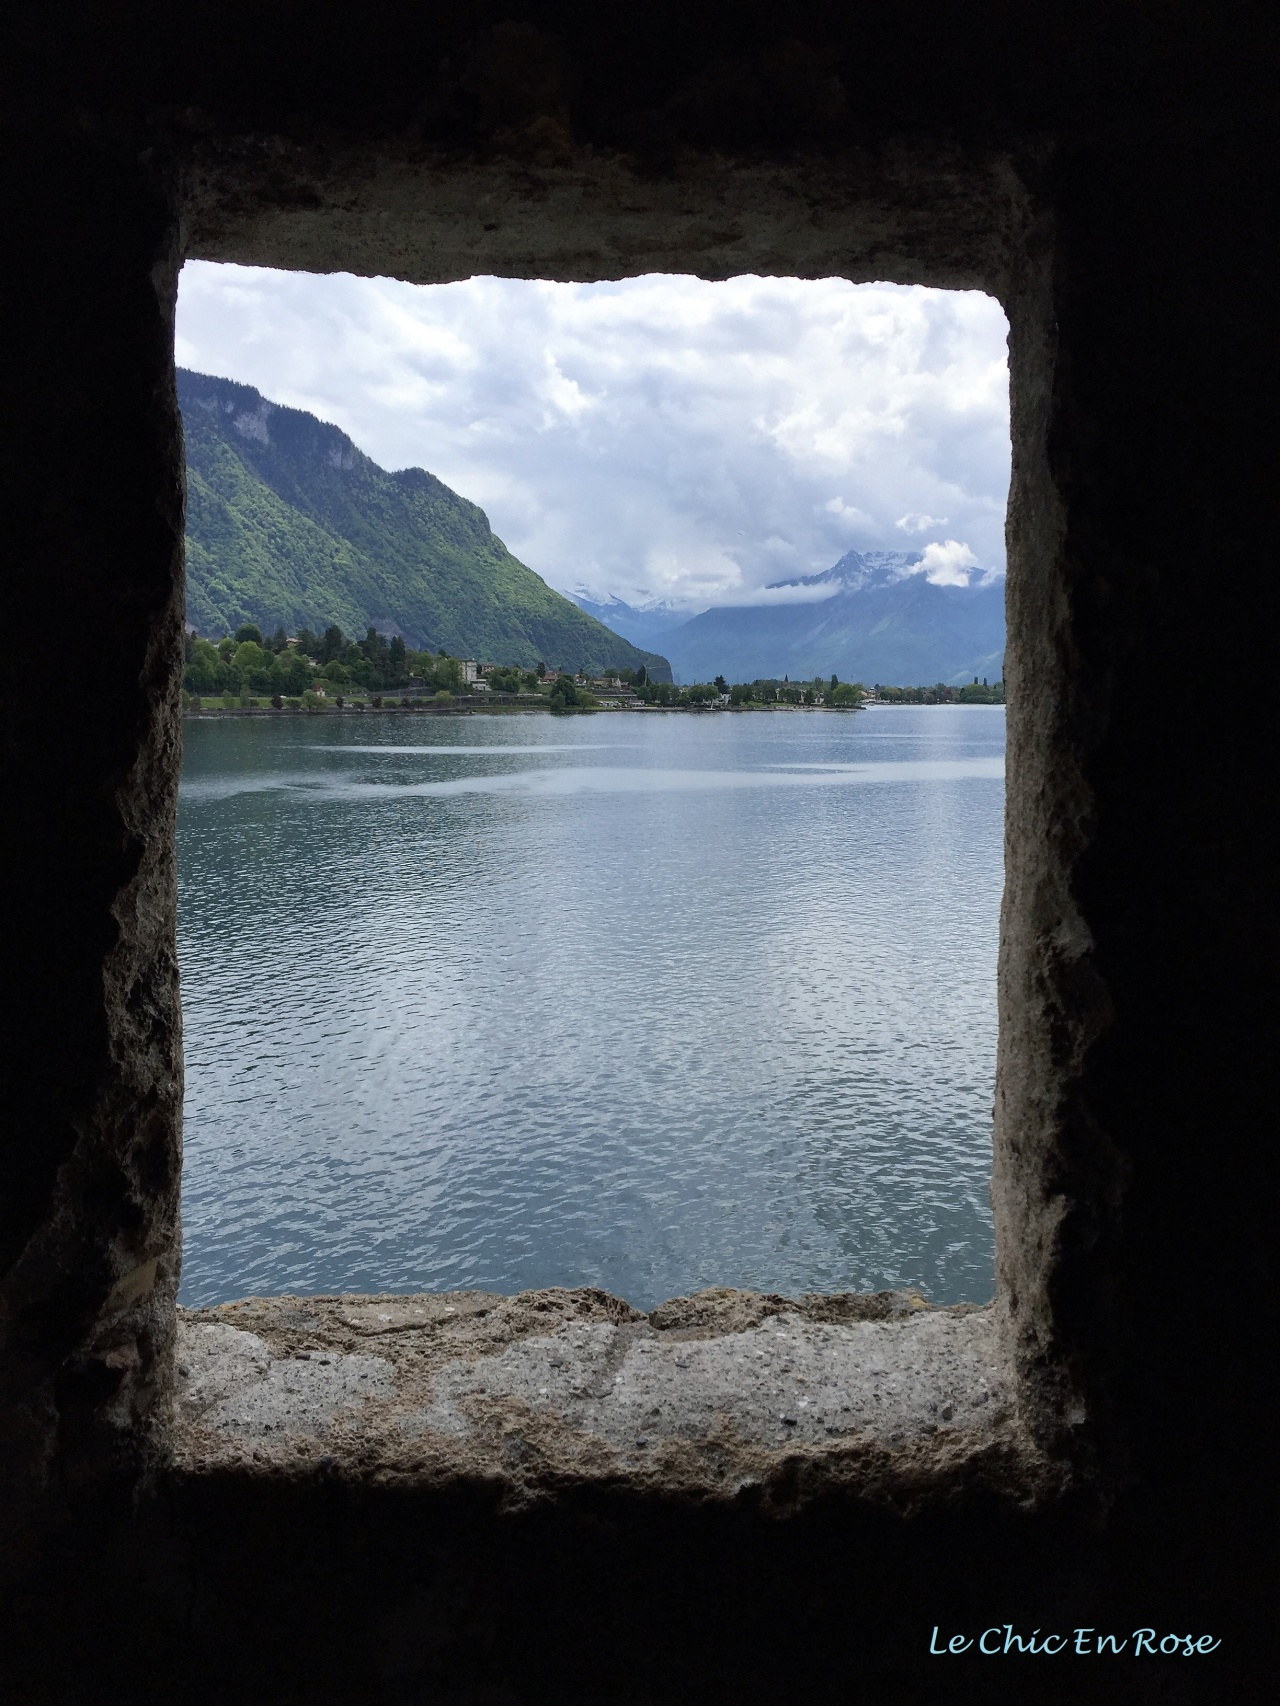 View of Lake Geneva and the Alps from Chateau de Chillon